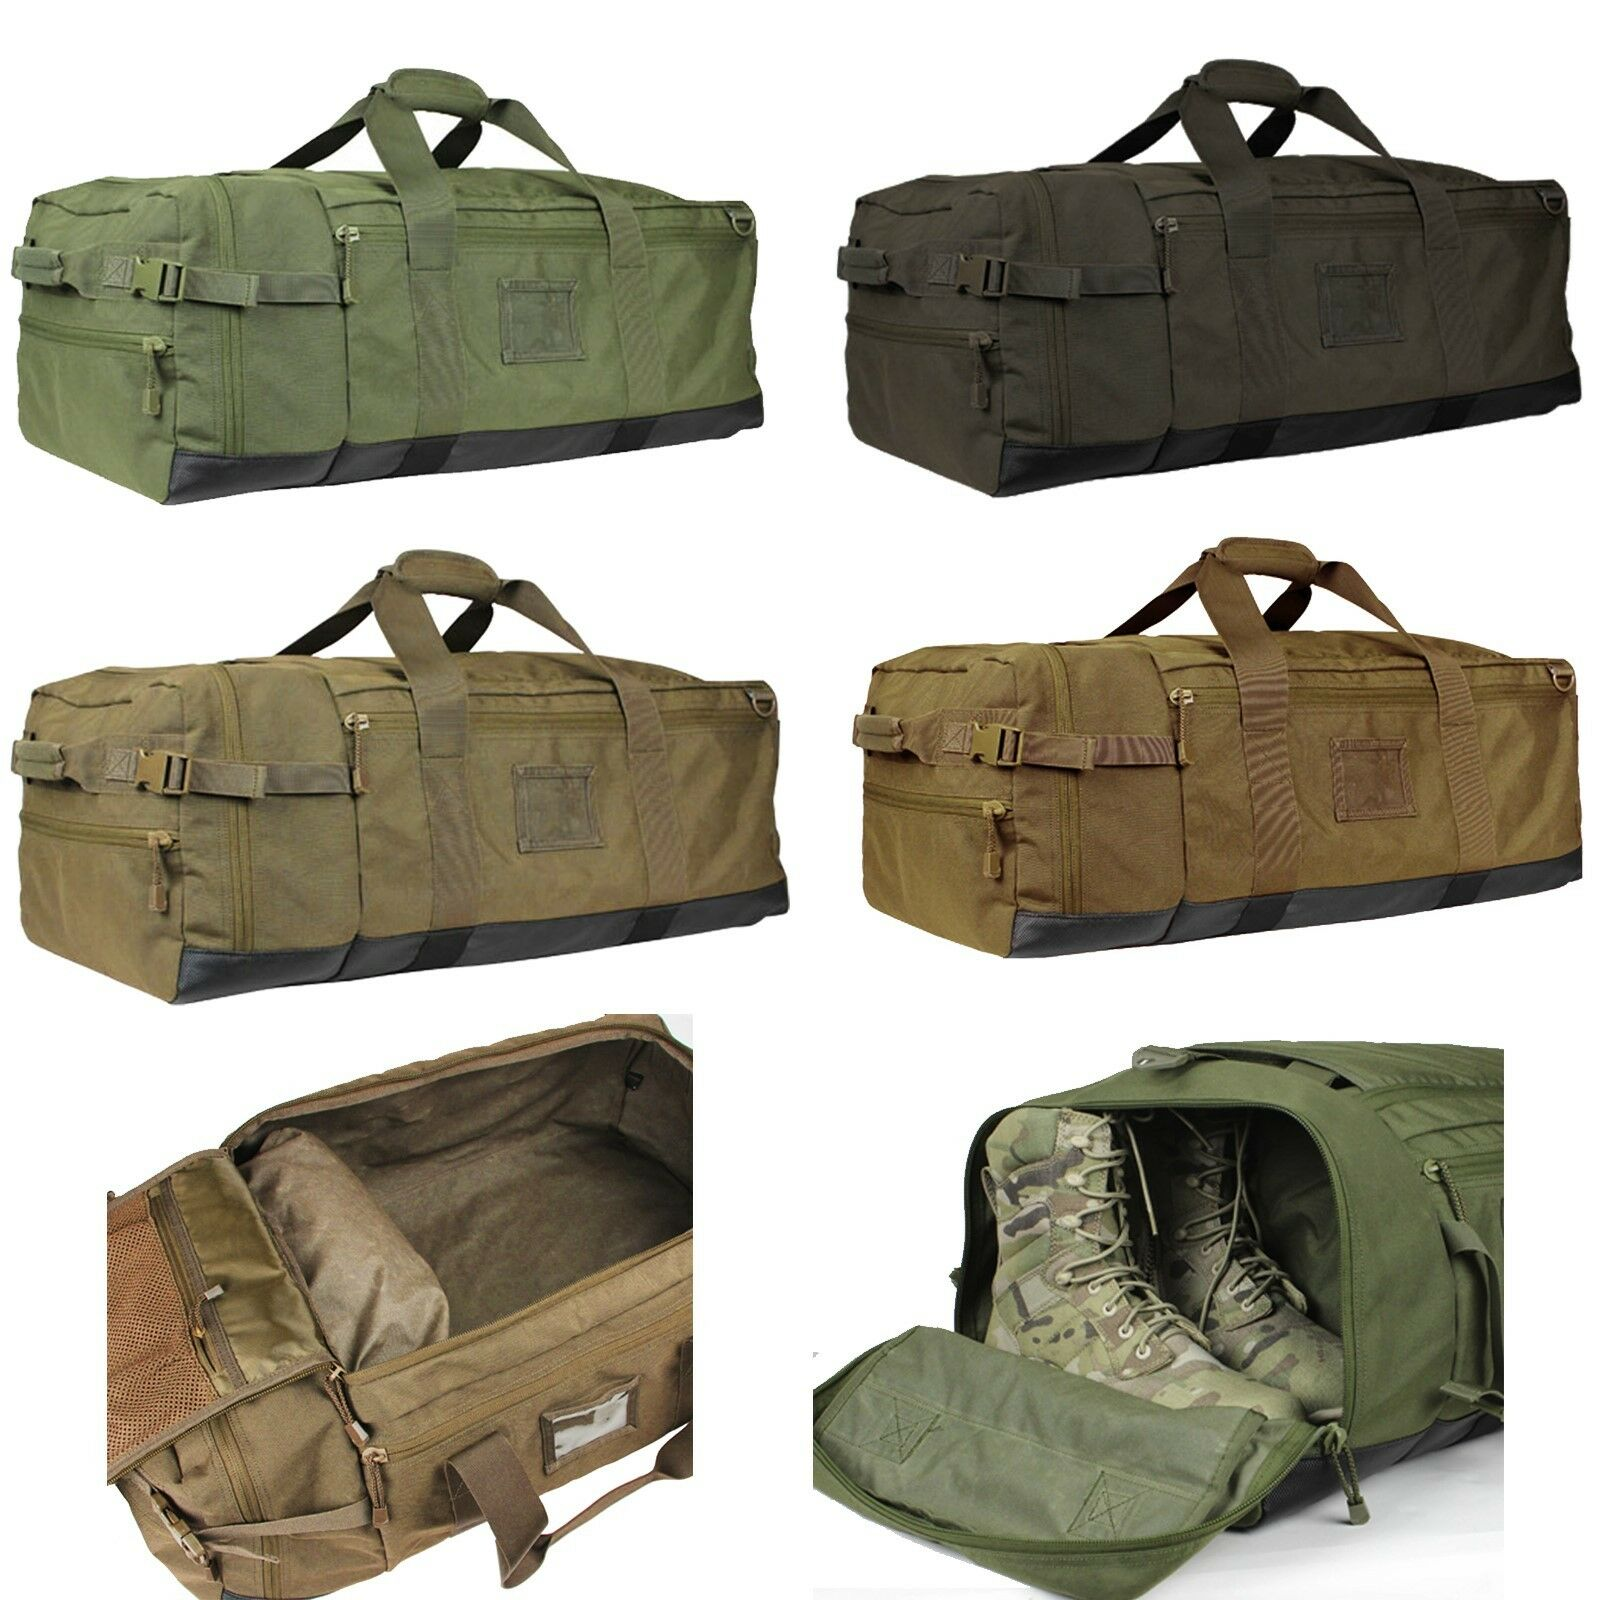 Condor 161 Expandable Compartment Travel Colossus Military Soldier Duffle Bag